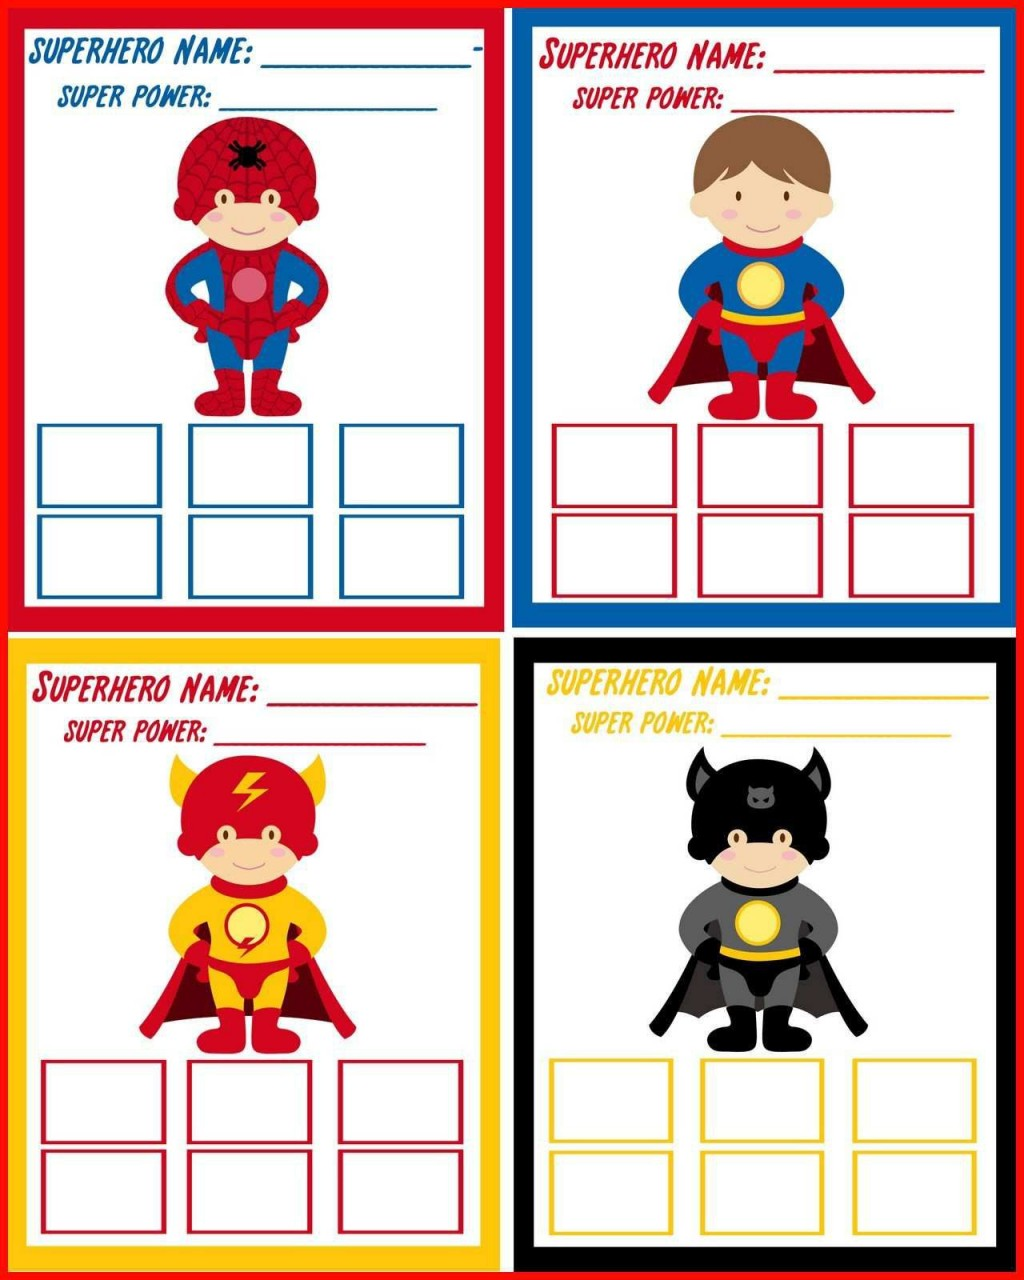 000 Phenomenal Superhero Invitation Template Free High Def  Baby Shower Newspaper Birthday PartyLarge